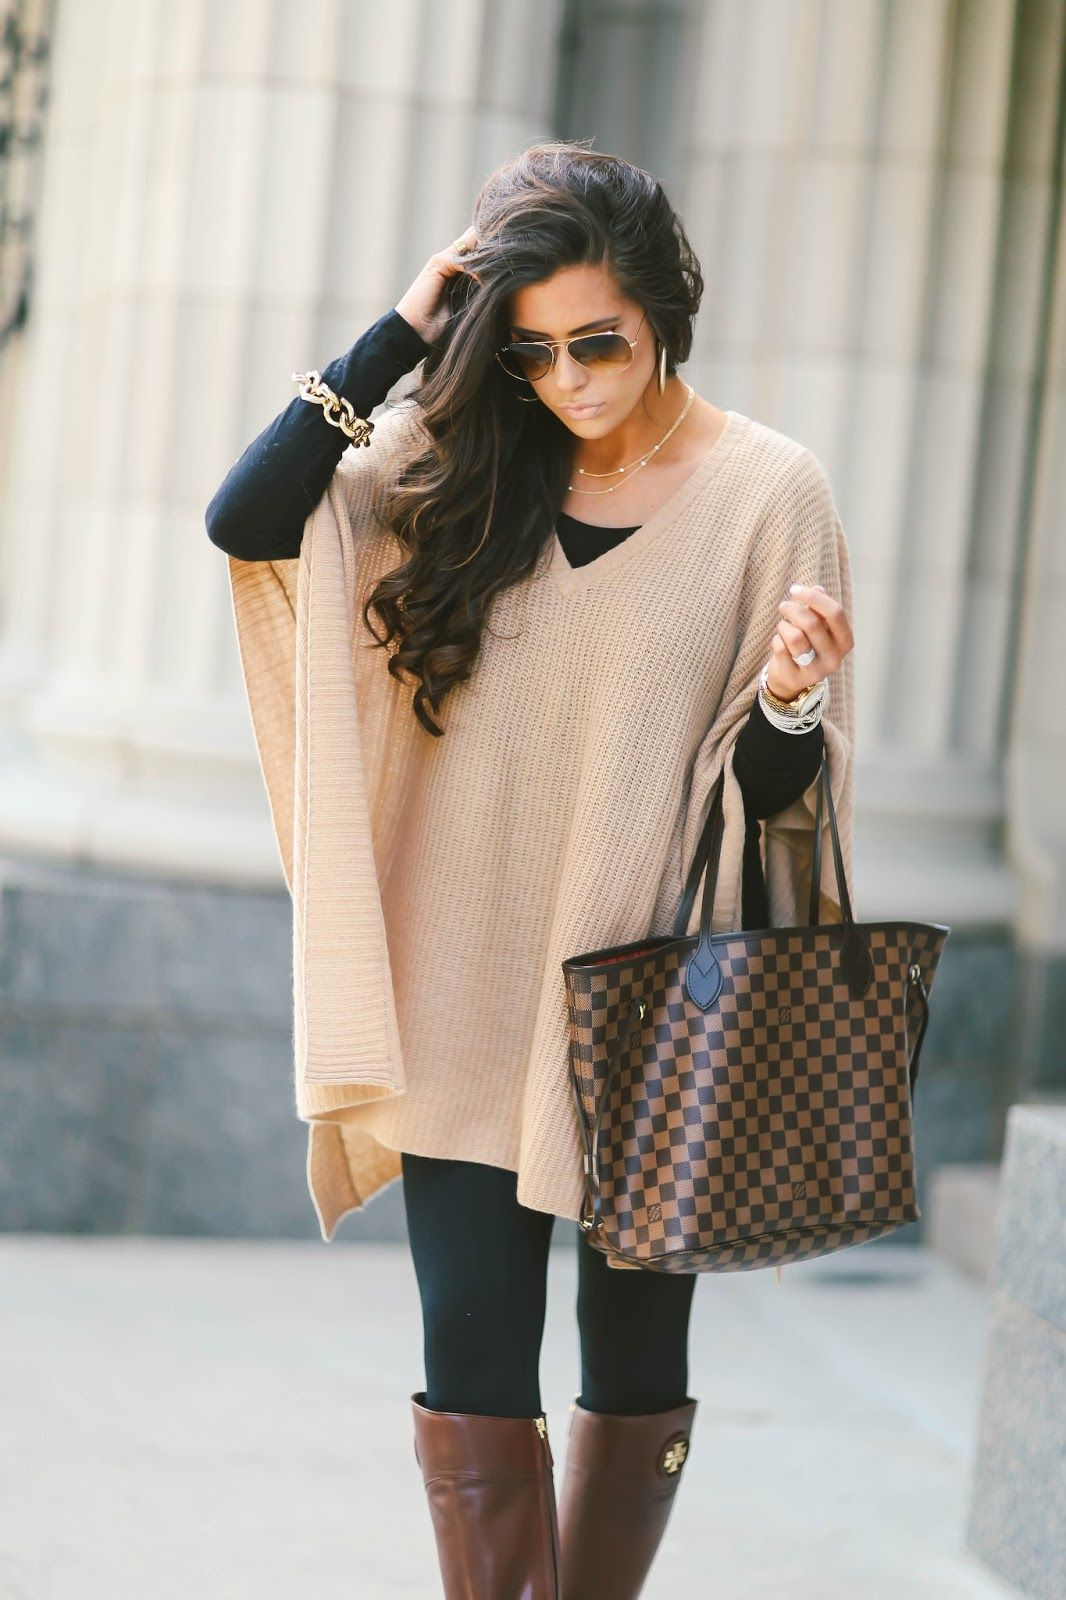 23 Chic Fall Outfit Ideas To Copy Right Now   Latest Outfit Ideas ...